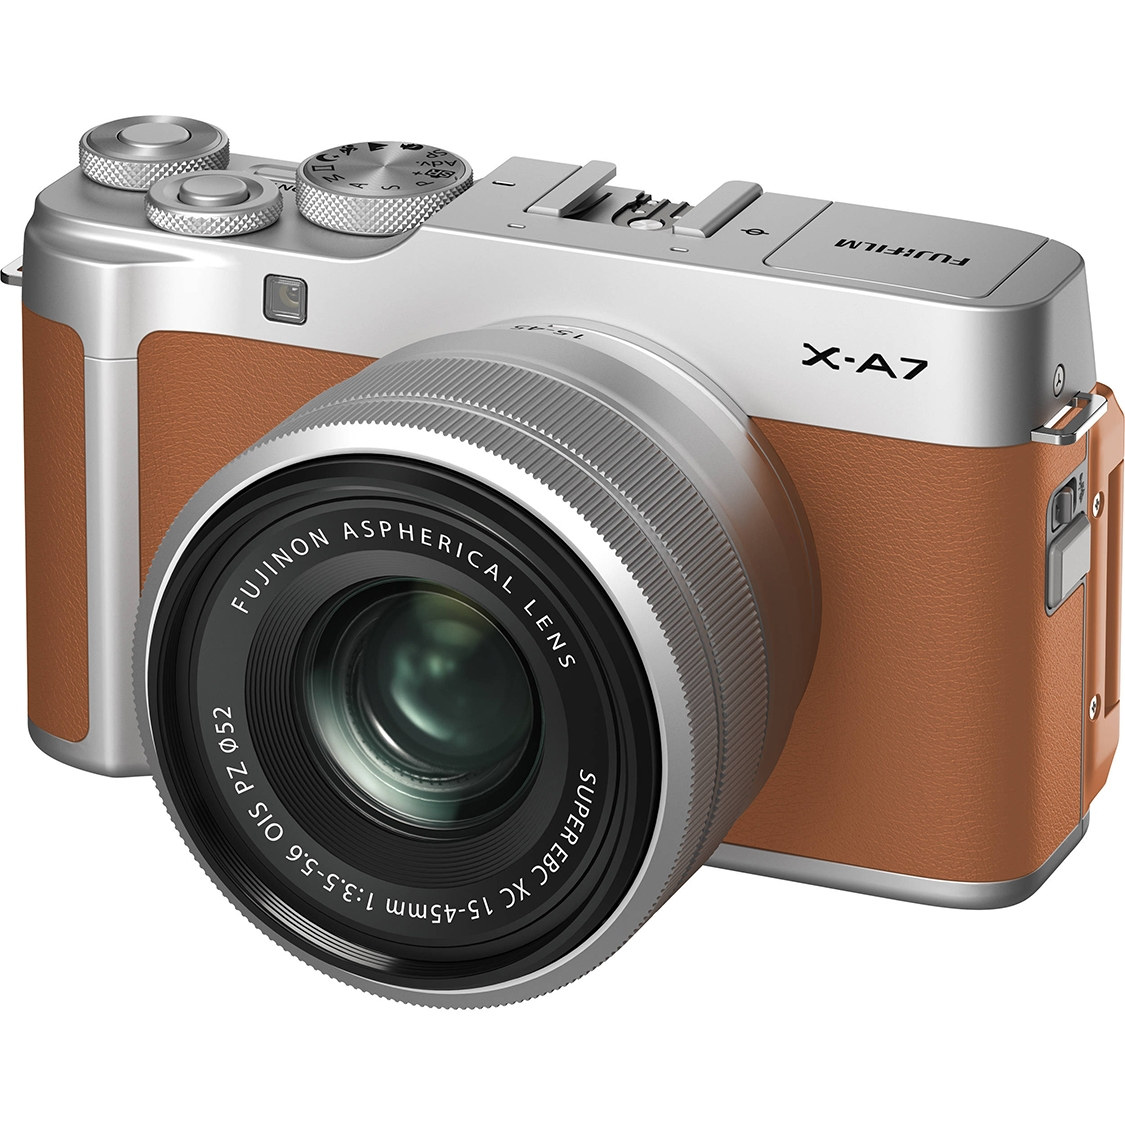 Fujifilm X-A7 Camera (camel) with 15-45mnm PZ Lens